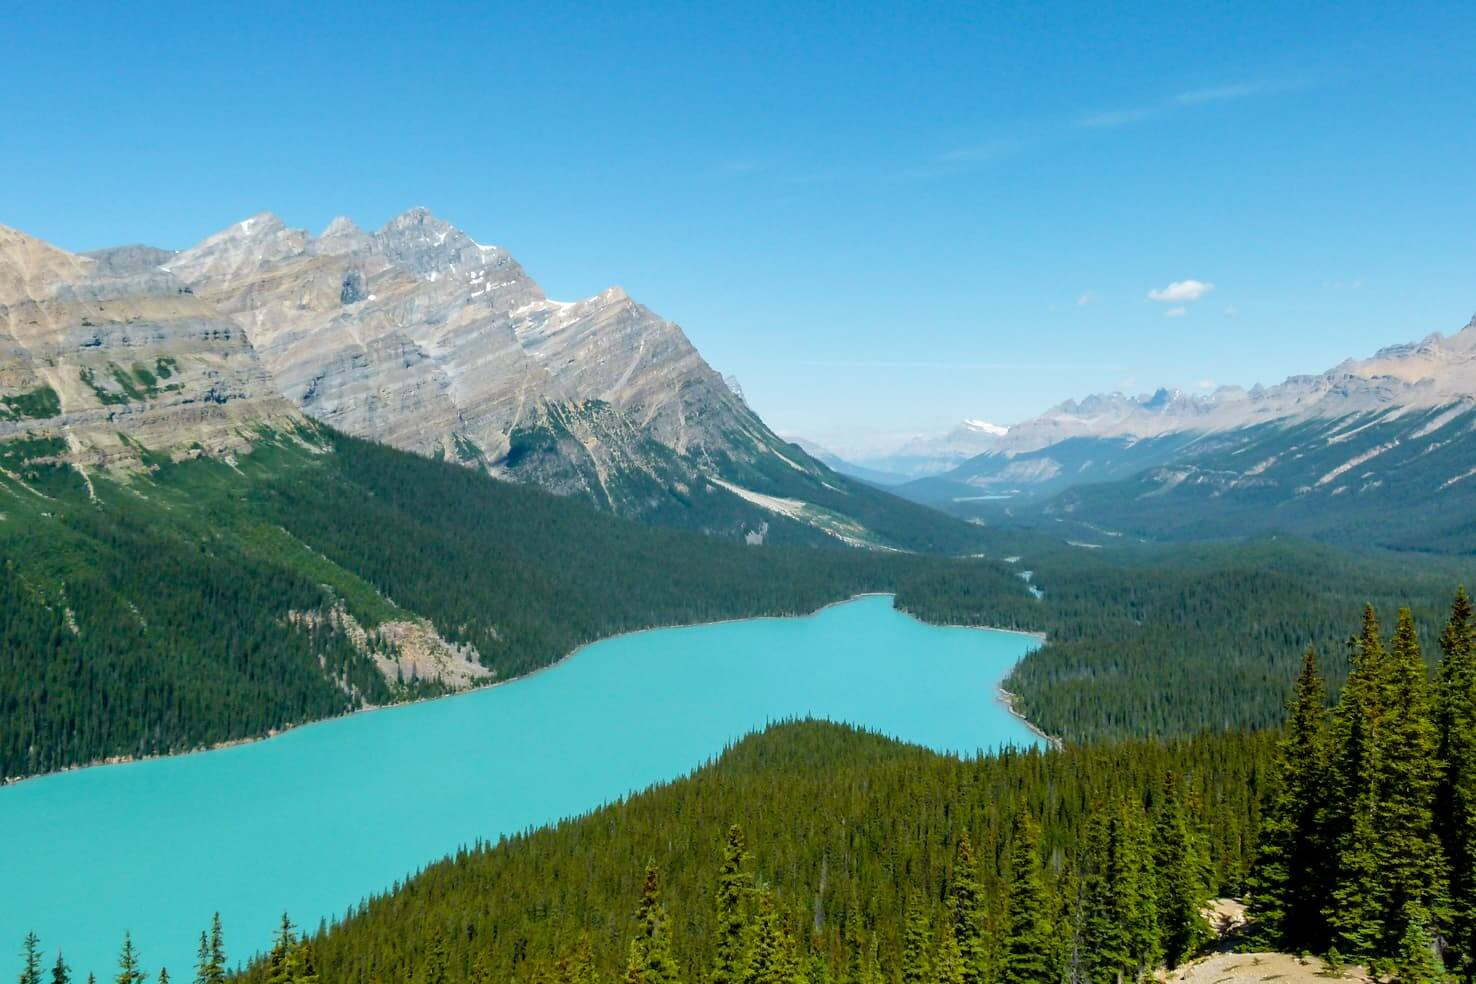 Western Canada Road Trip from Calgary to Vancouver - Peyto Lake